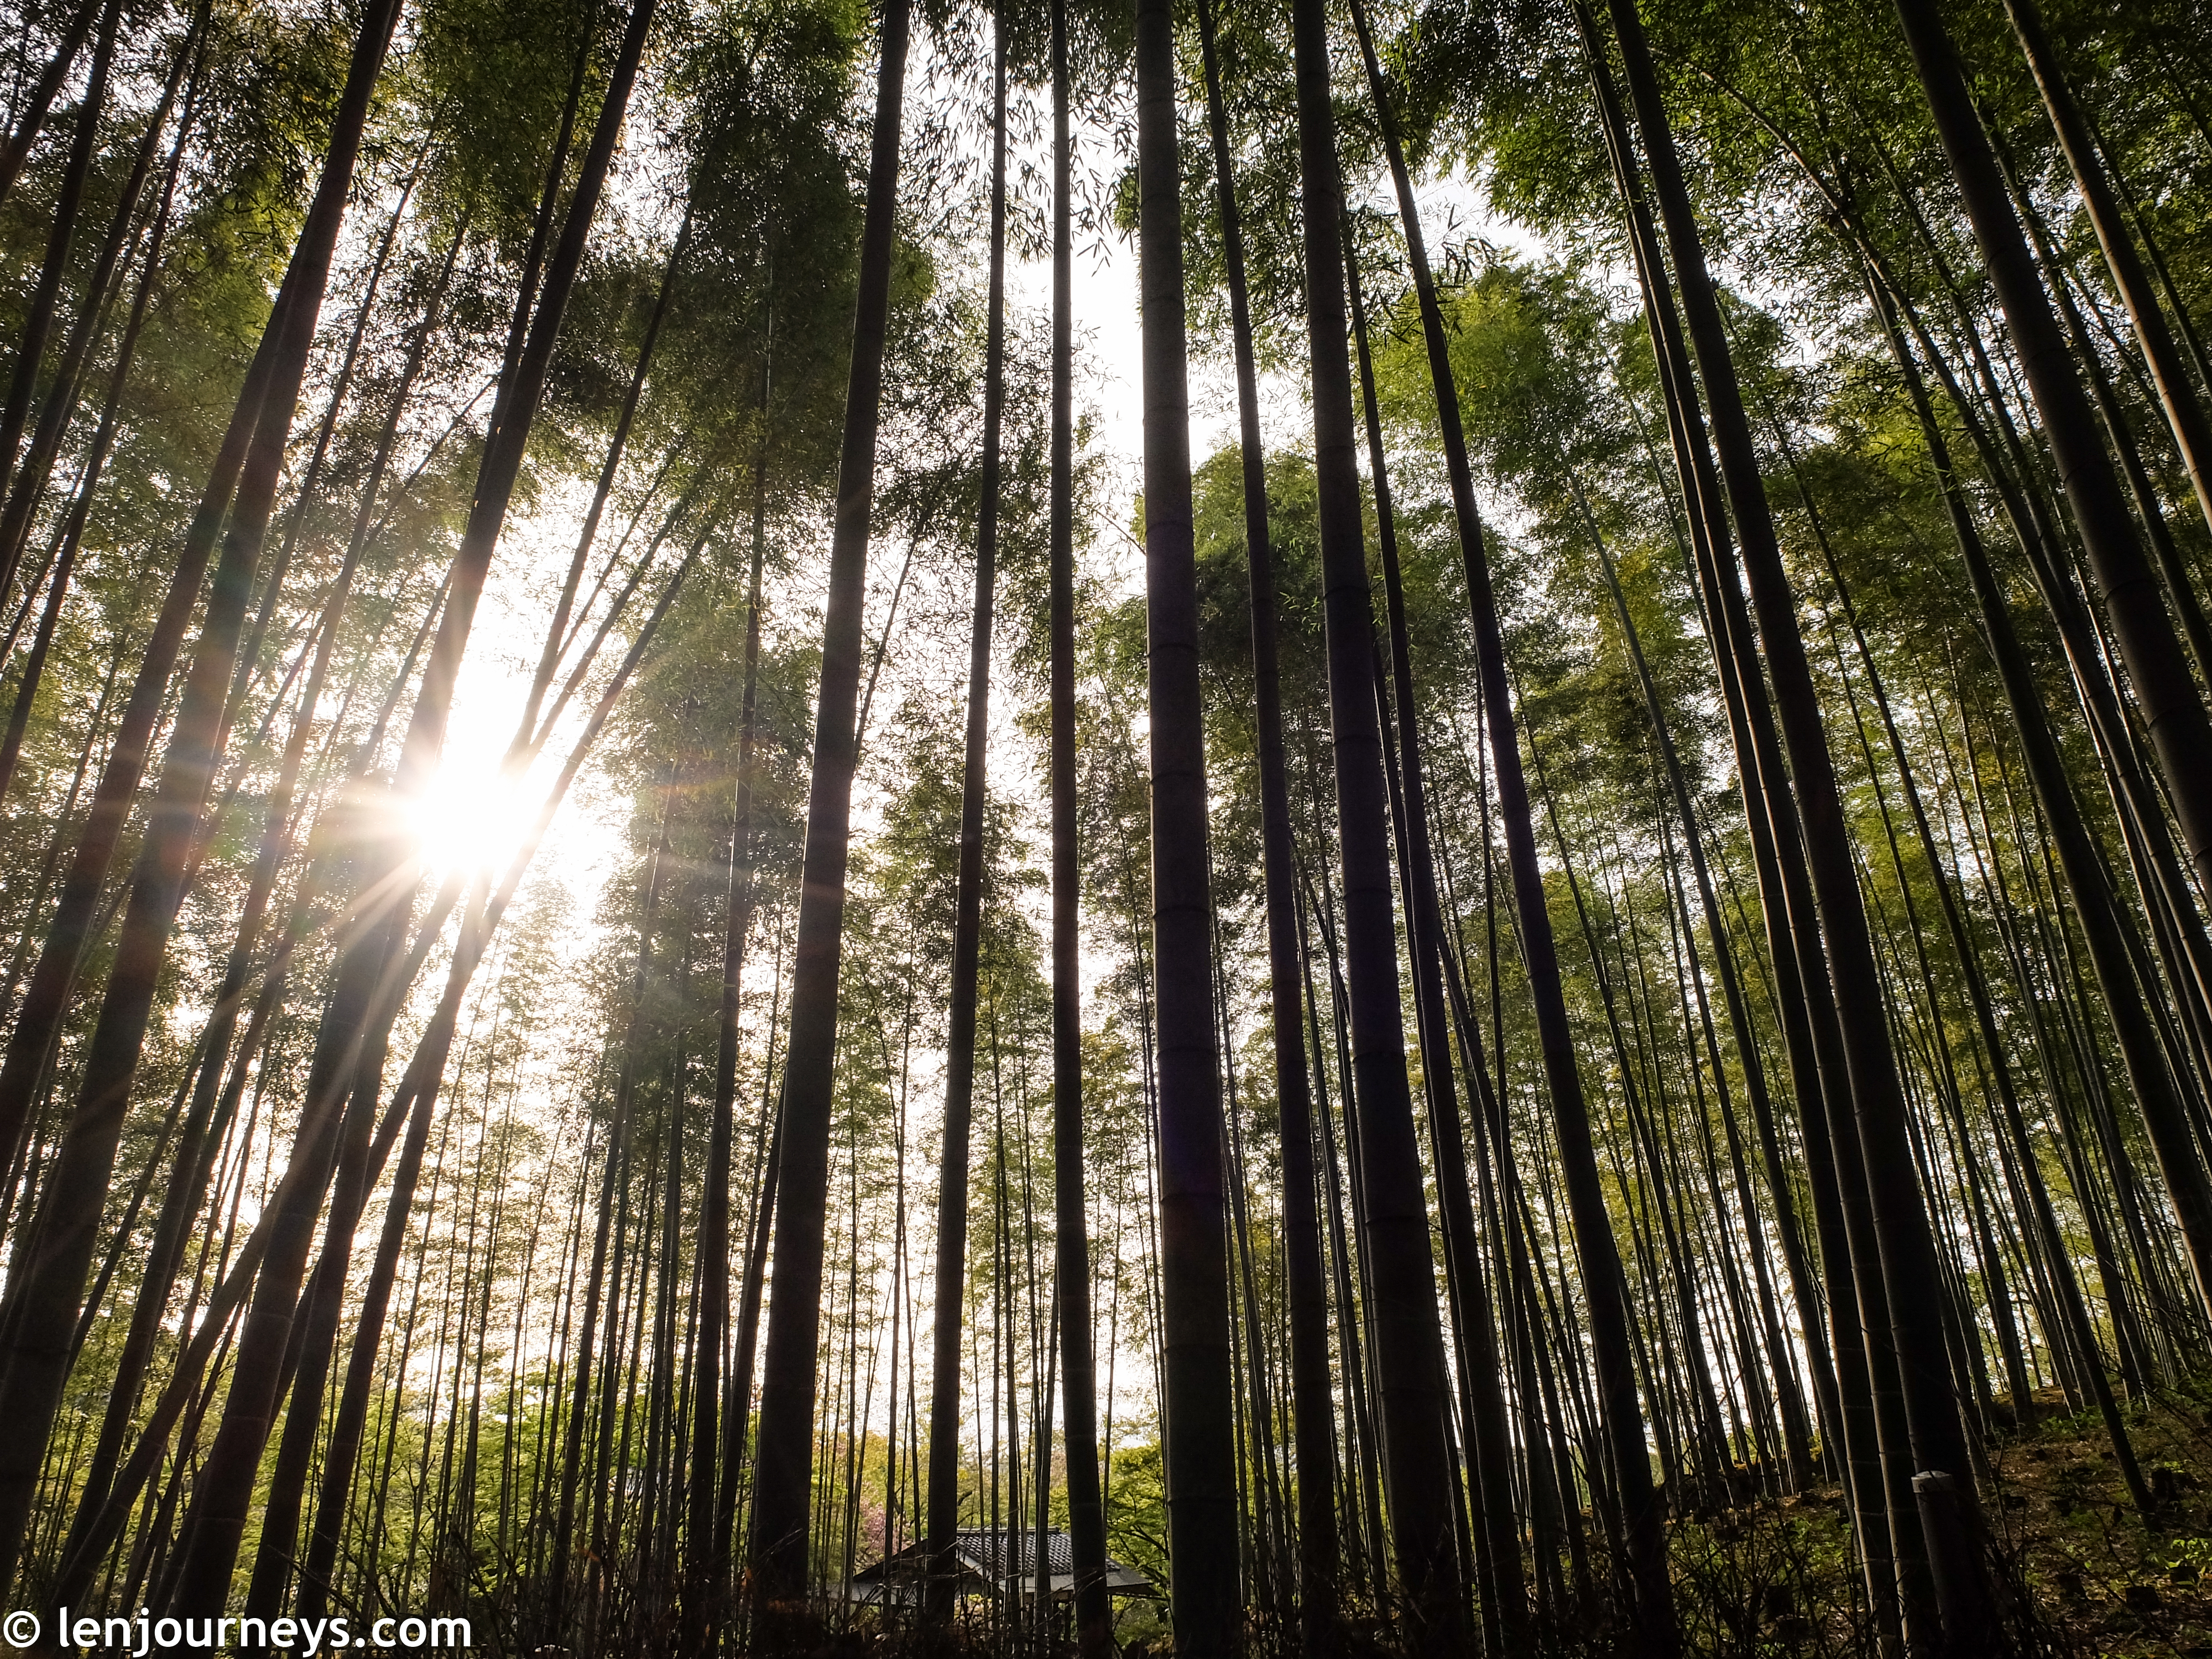 Bamboo groves in the early morning